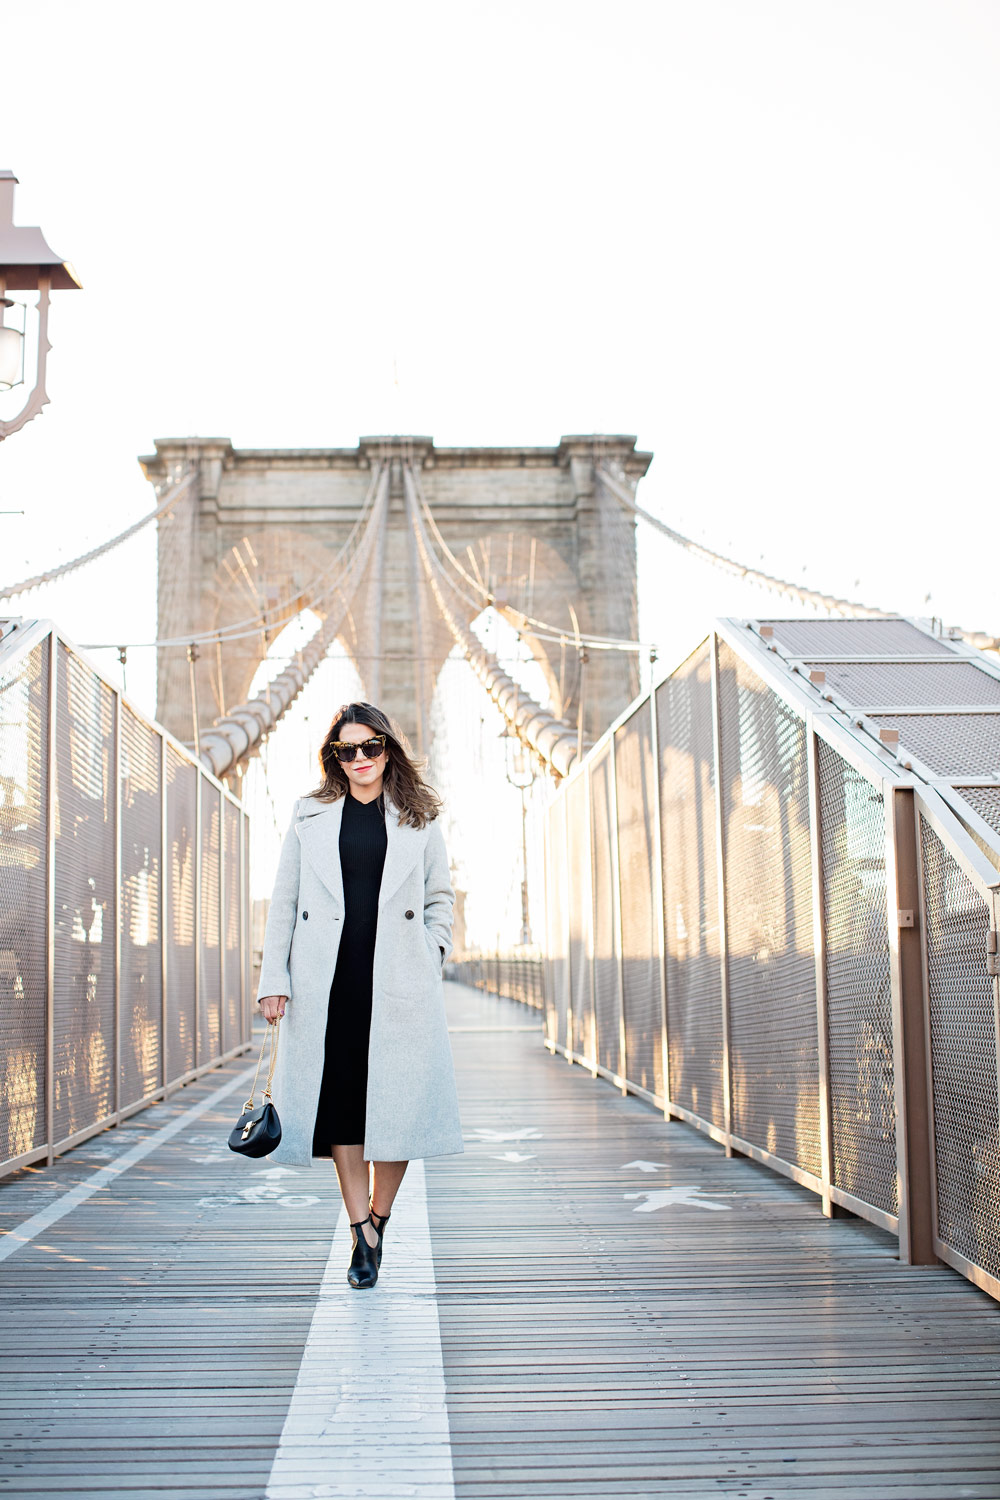 brooklyn-bridge-club-monaco-grey-wool-coat-black-dress-chloe-drew-bag-schutz-shoes-booties-new-york-city-corporate-catwalk-nyc-fashion-blogger-3